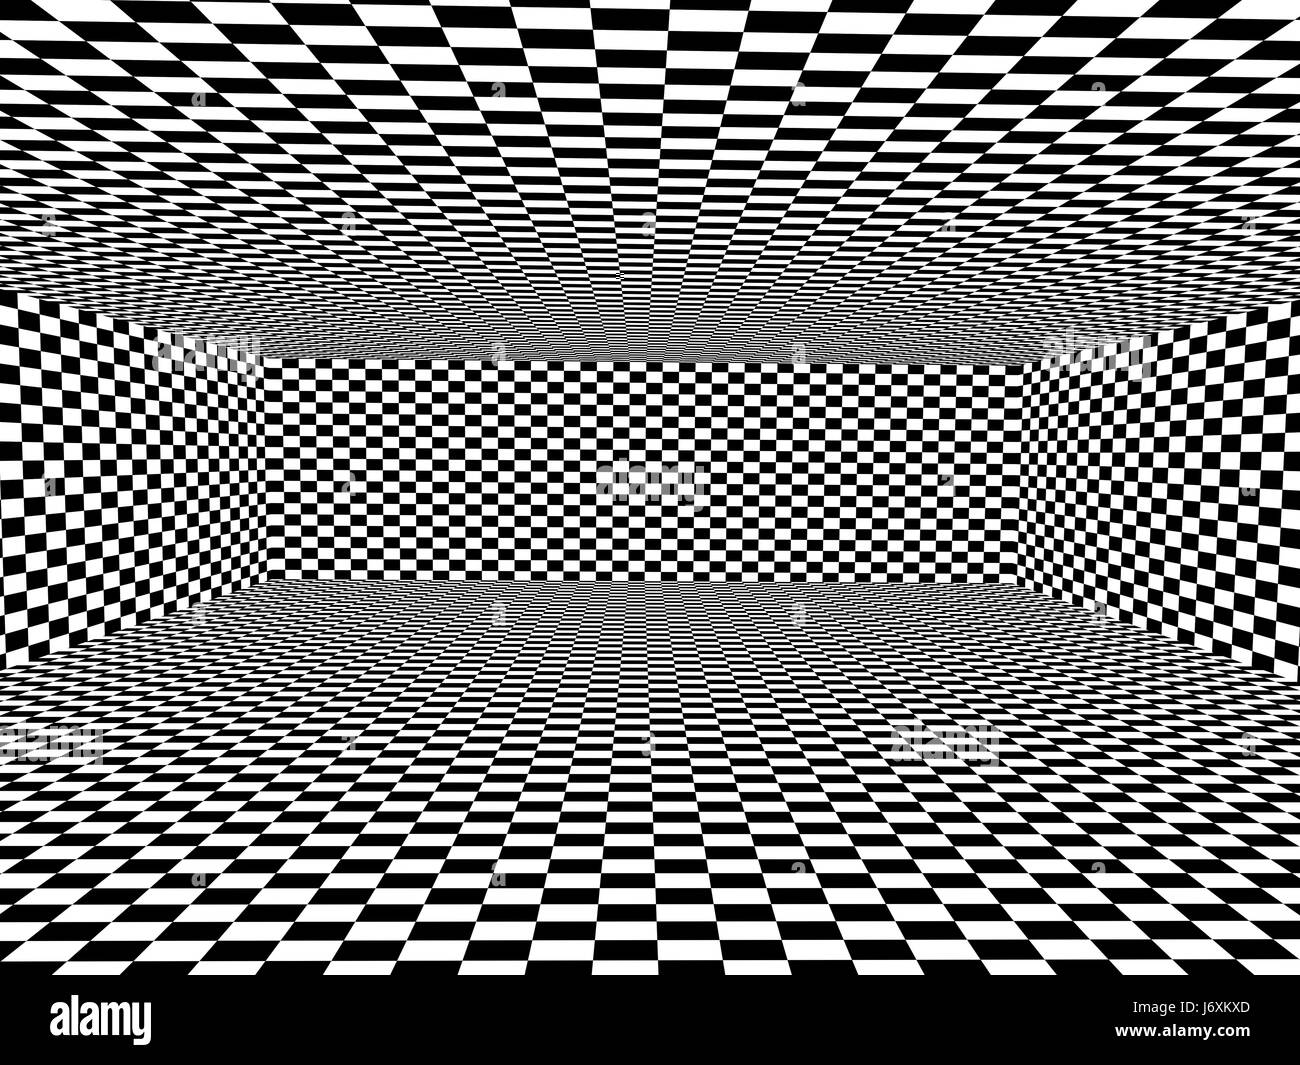 Black and white background with box shape with checkered pattern 3d render